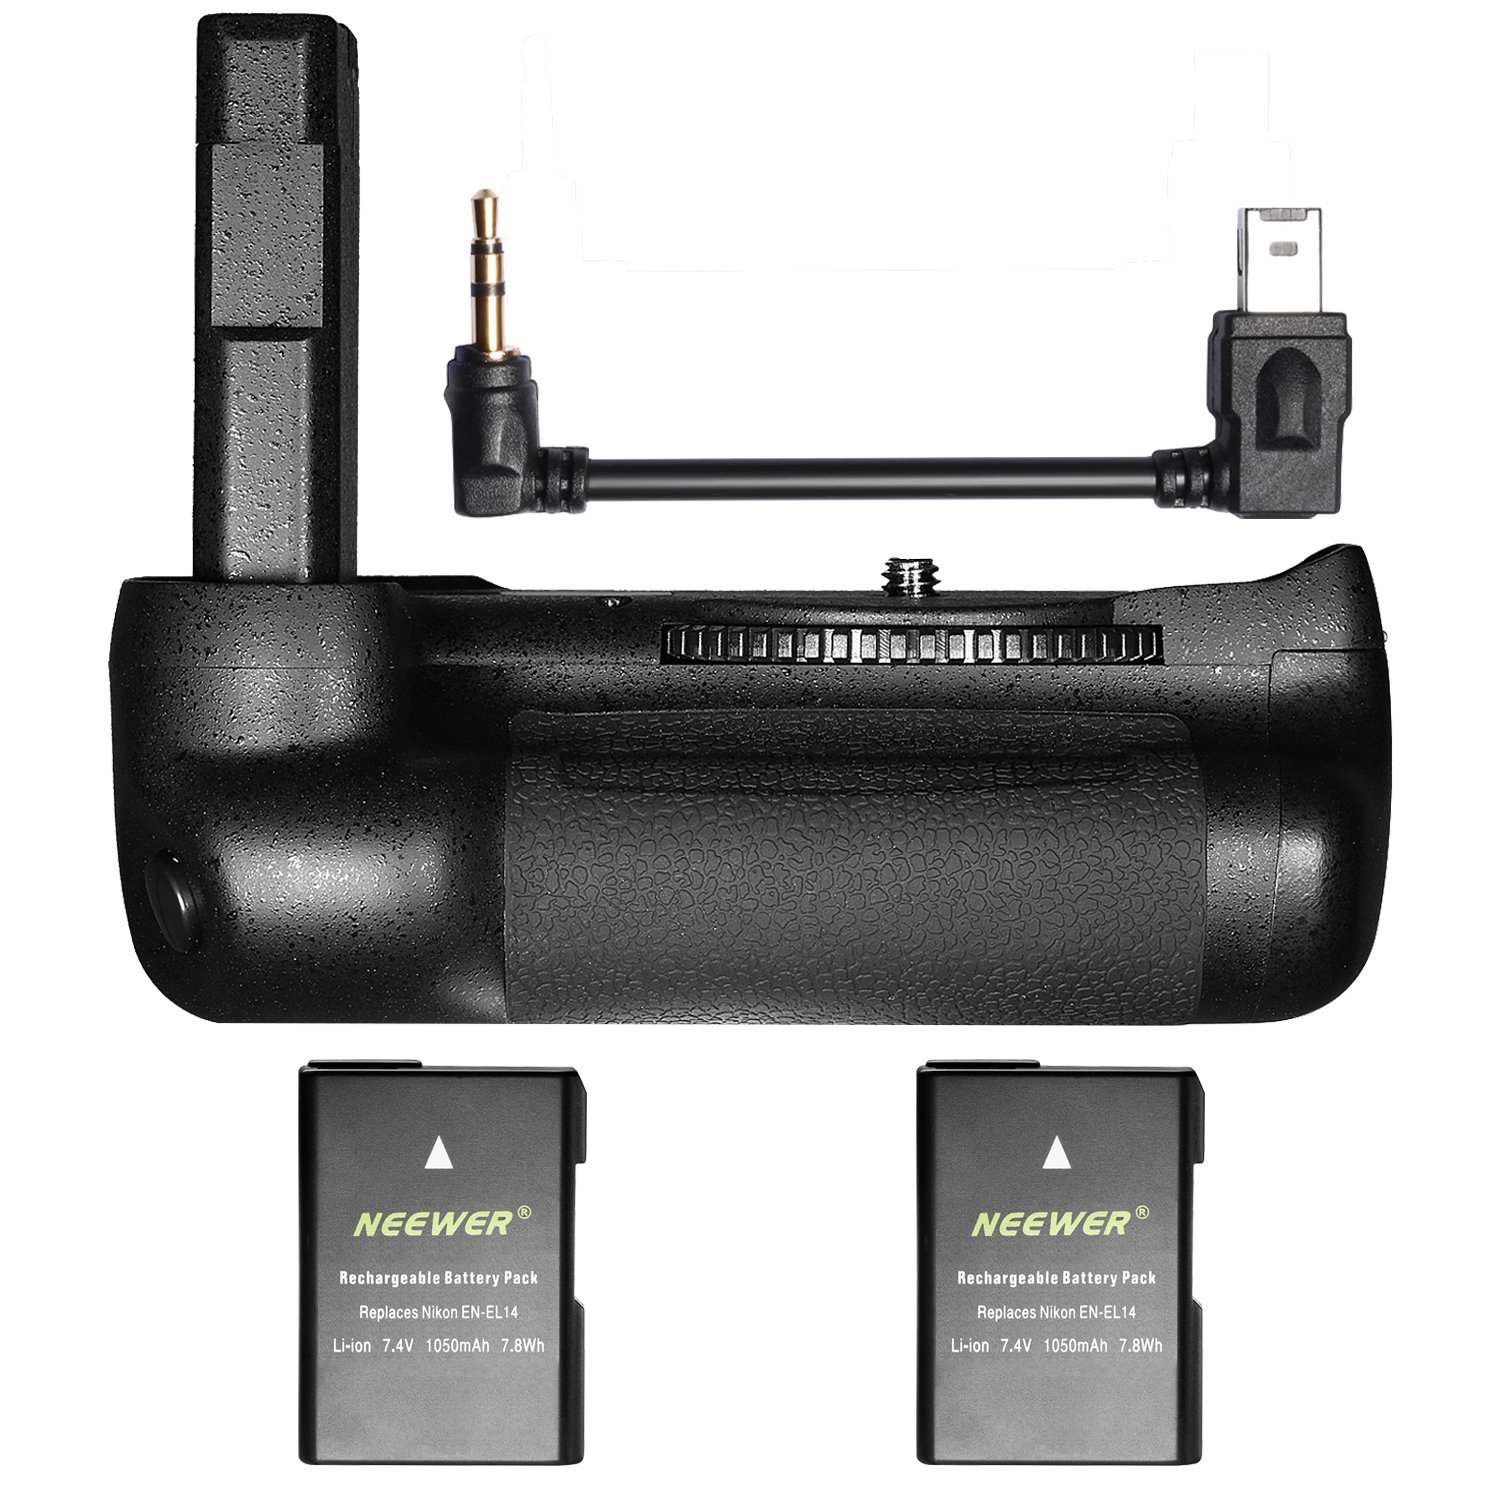 Neewer Pro Vertical Battery Grip for Nikon D5600 and D5500 DSLR Camera with 2-Pack 7.4V 1050mAh Nikon EN-EL14 Replacement Rechargeable Li-ion Battery (Black) by Neewer